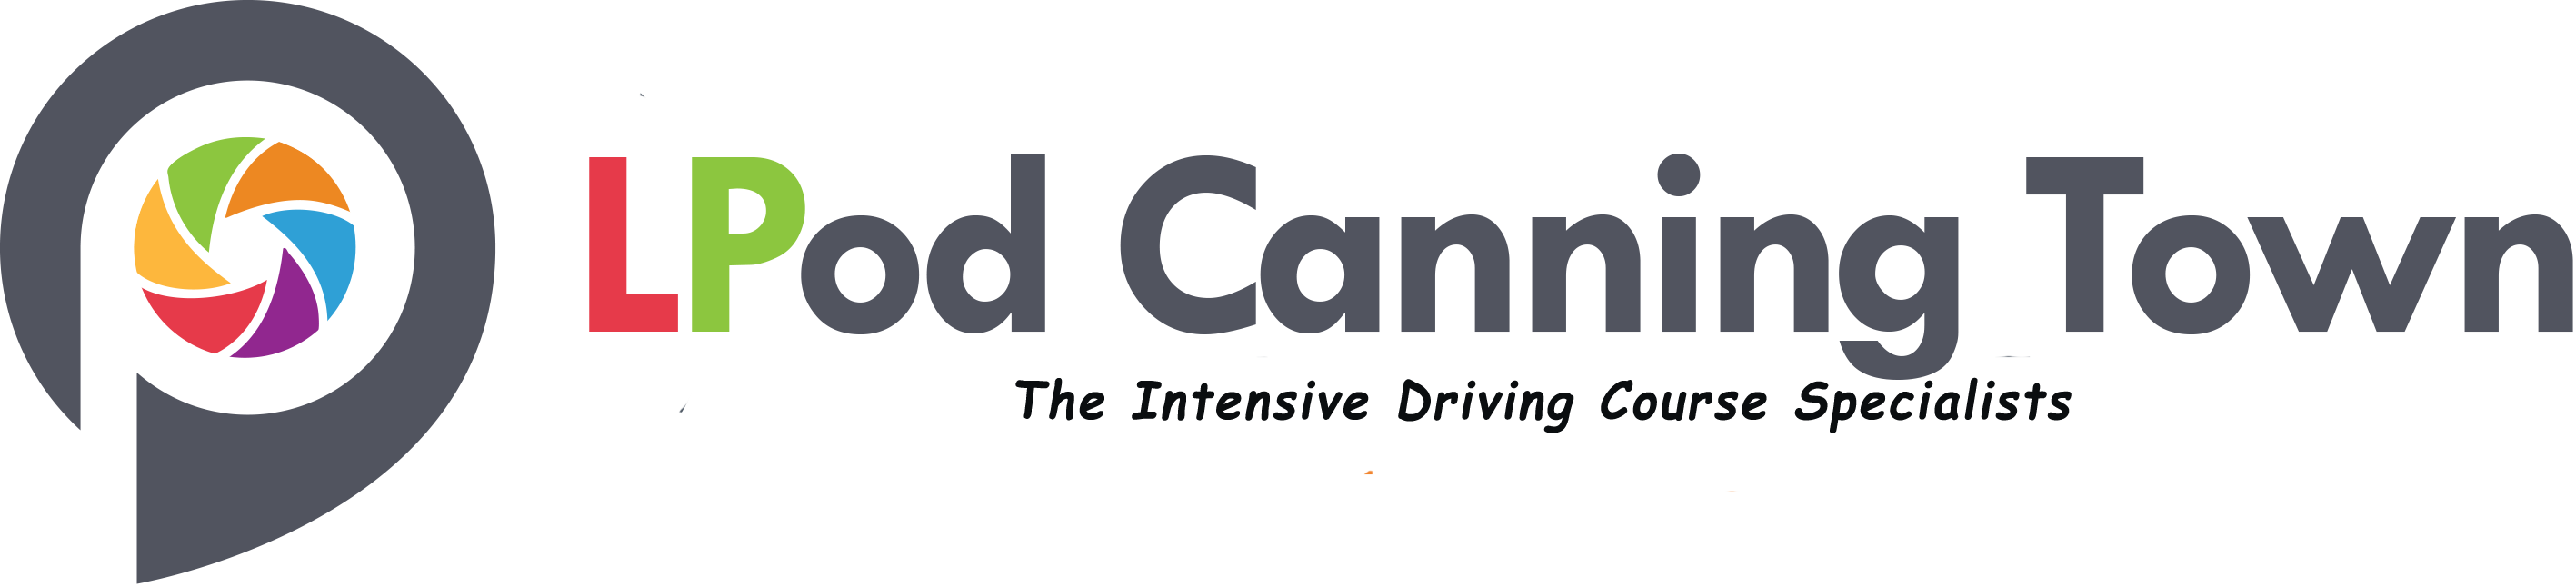 intensive driving courses canning town, intensive driving school canning town, intensive driving lessons canning town, one week driving course canning town, fast pass driving canning town, crash driving courses canning town, driving lessons canning town, automatic driving lessons canning town